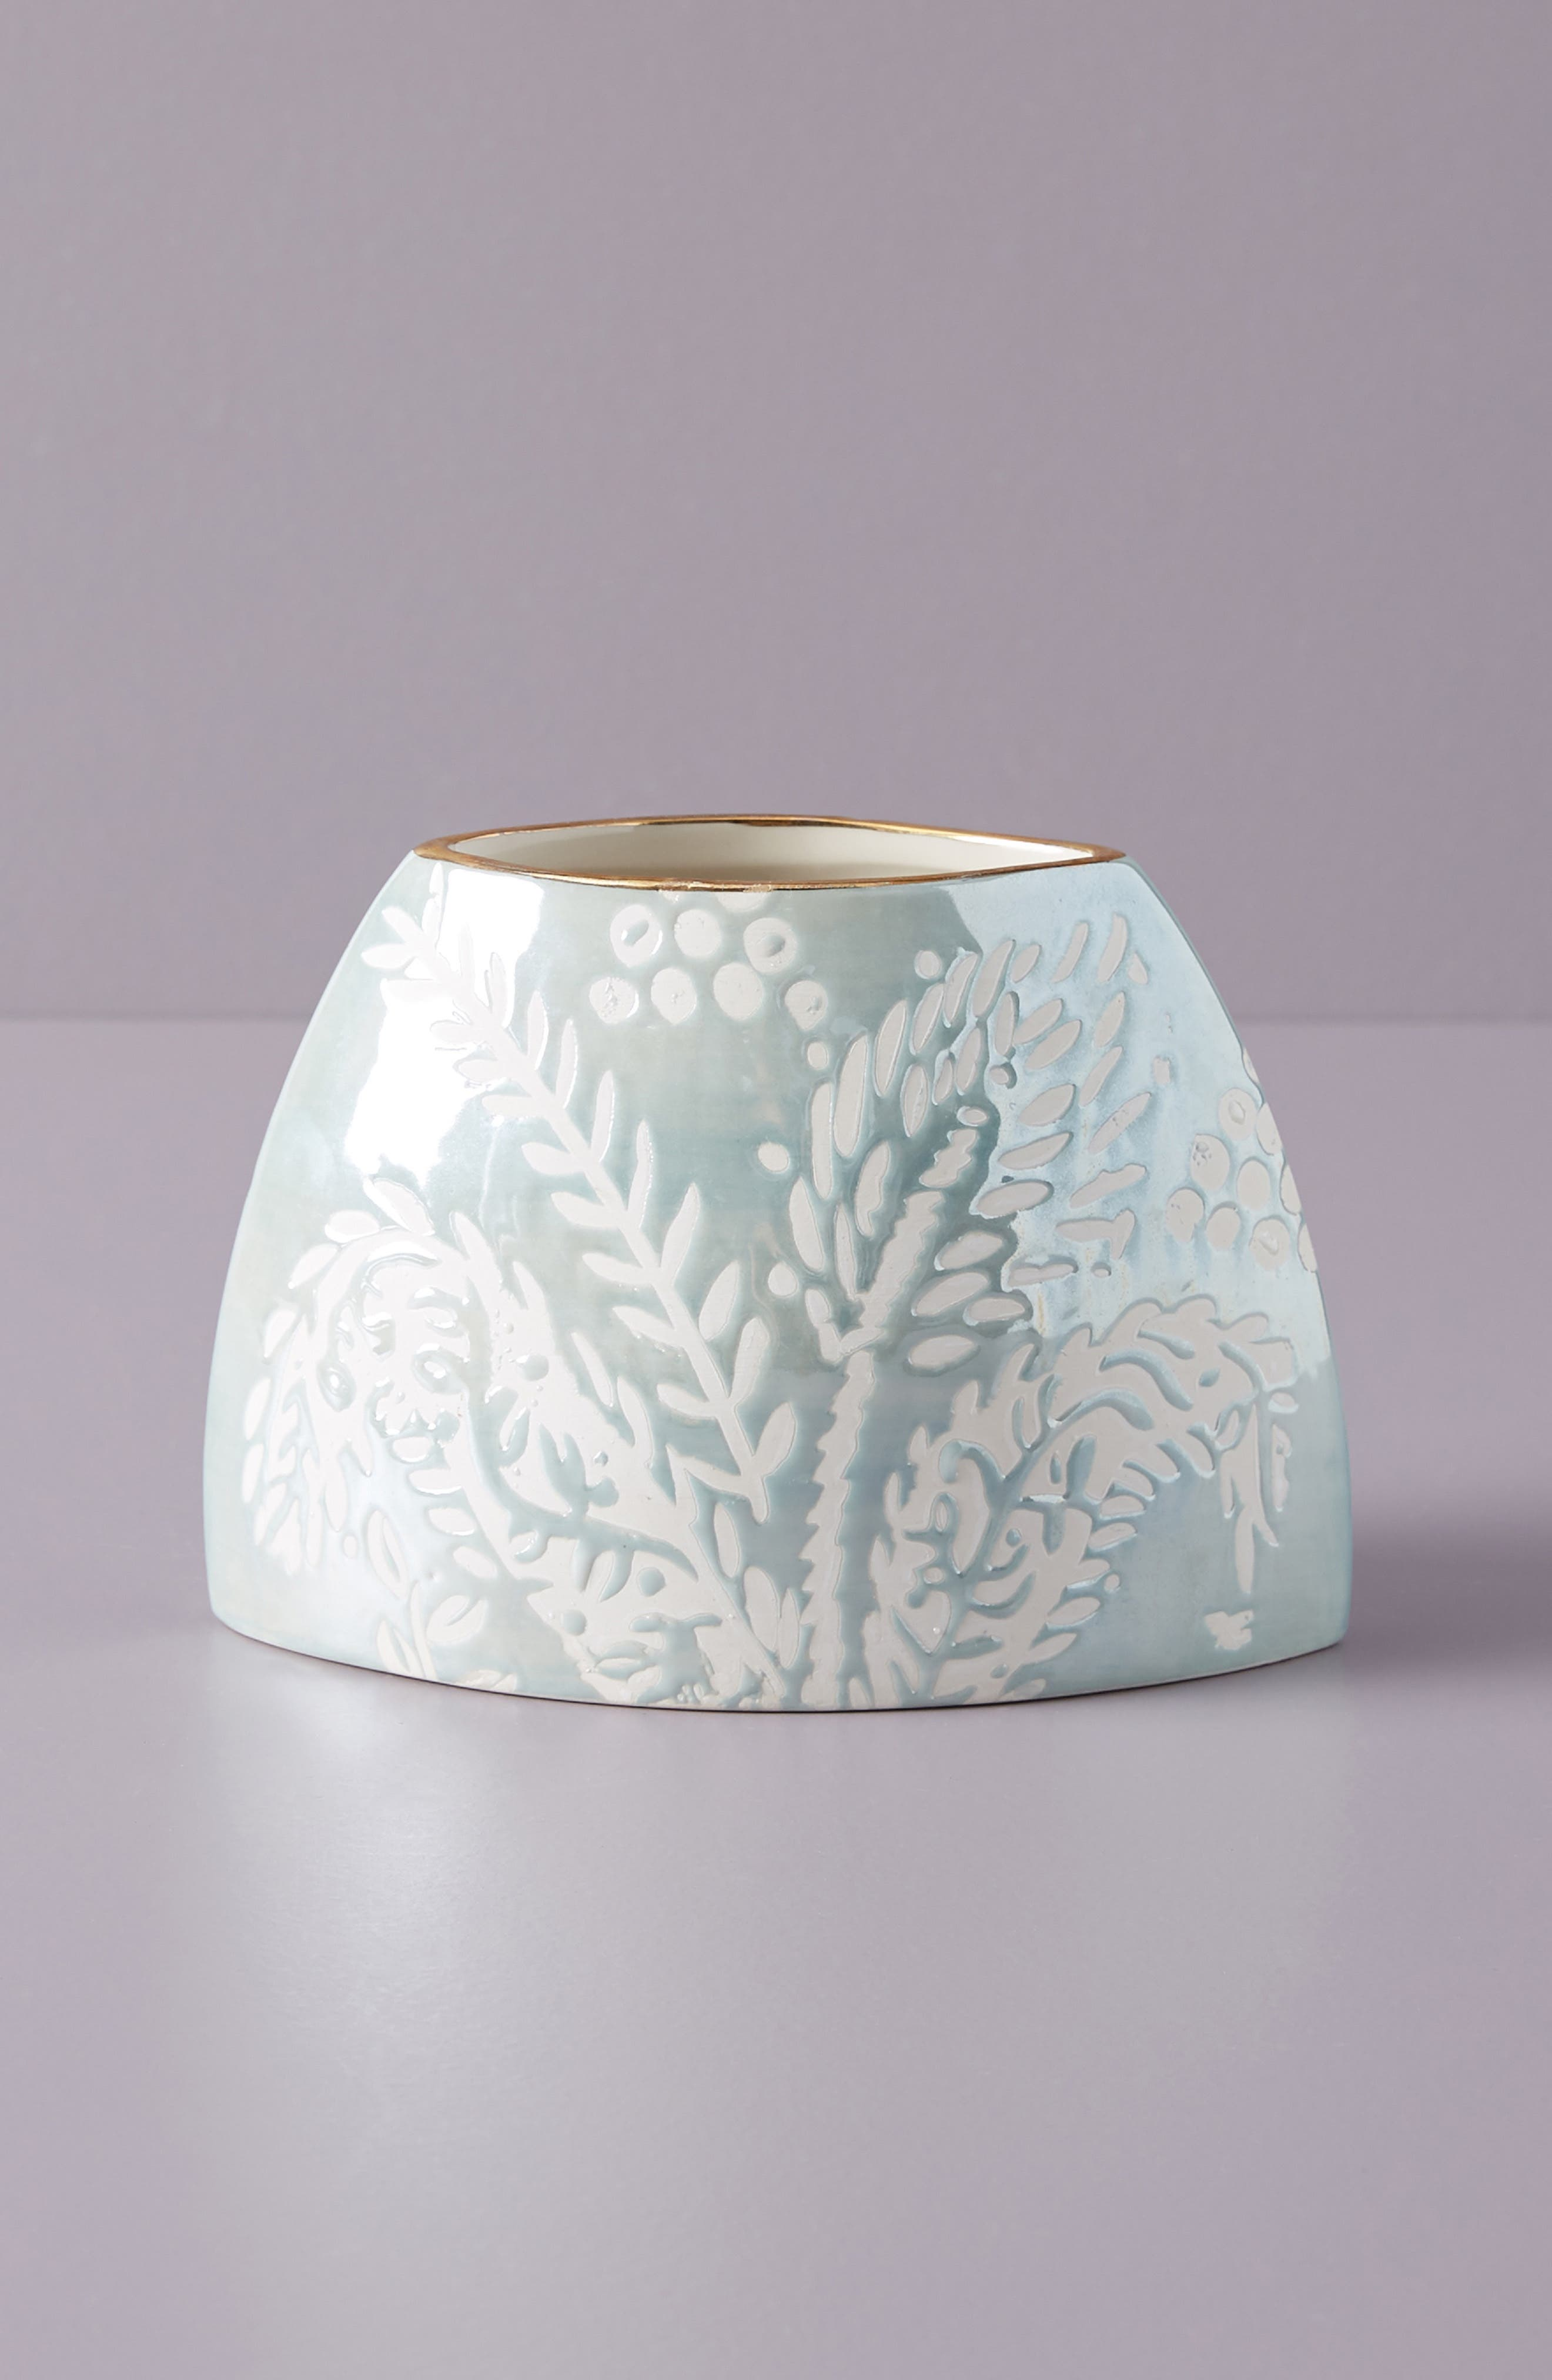 ANTHROPOLOGIE,                             Holly Vase,                             Main thumbnail 1, color,                             BLUE